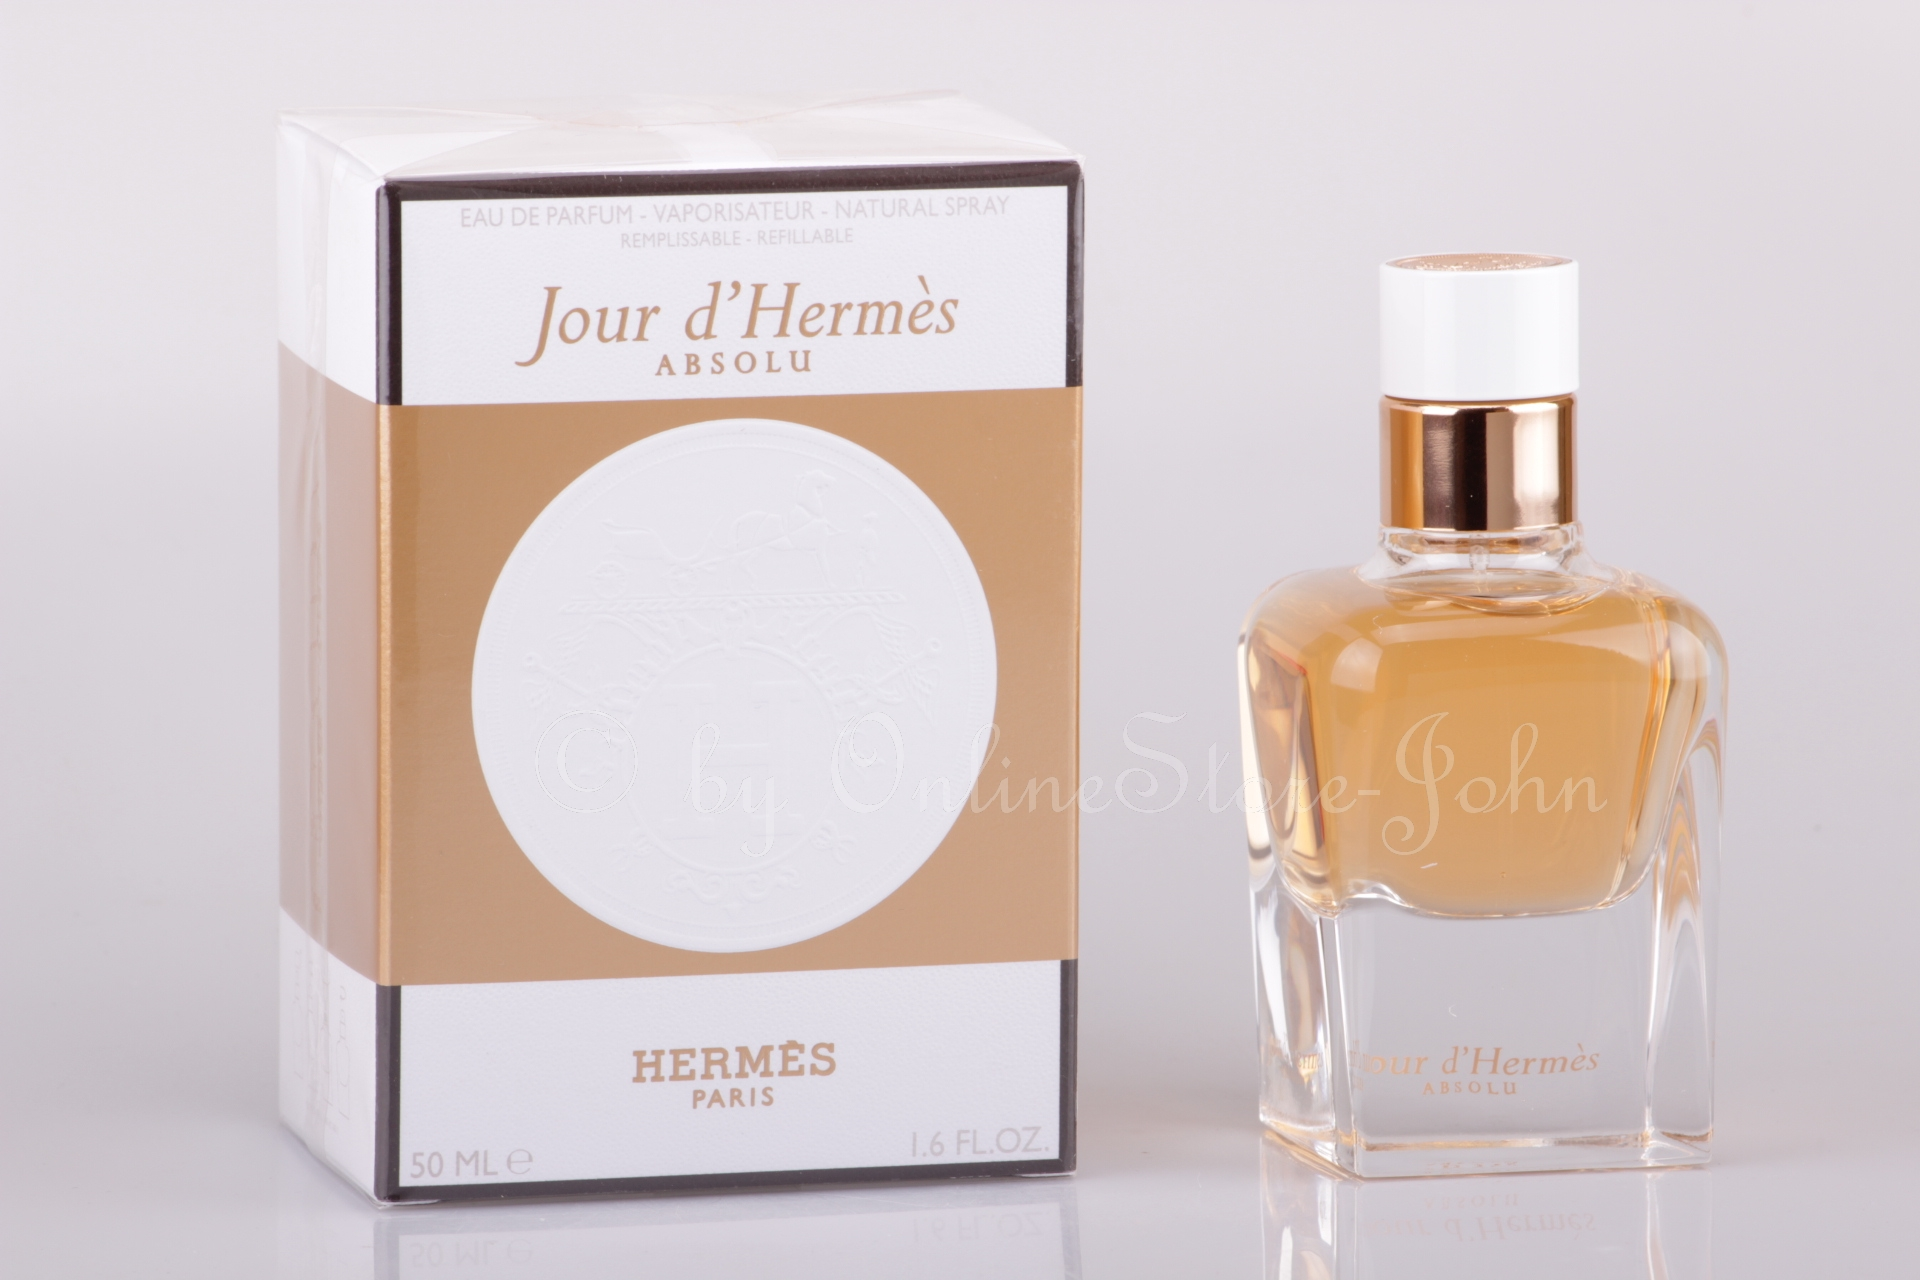 hermes jour d 39 hermes absolu 50ml eau de parfum. Black Bedroom Furniture Sets. Home Design Ideas